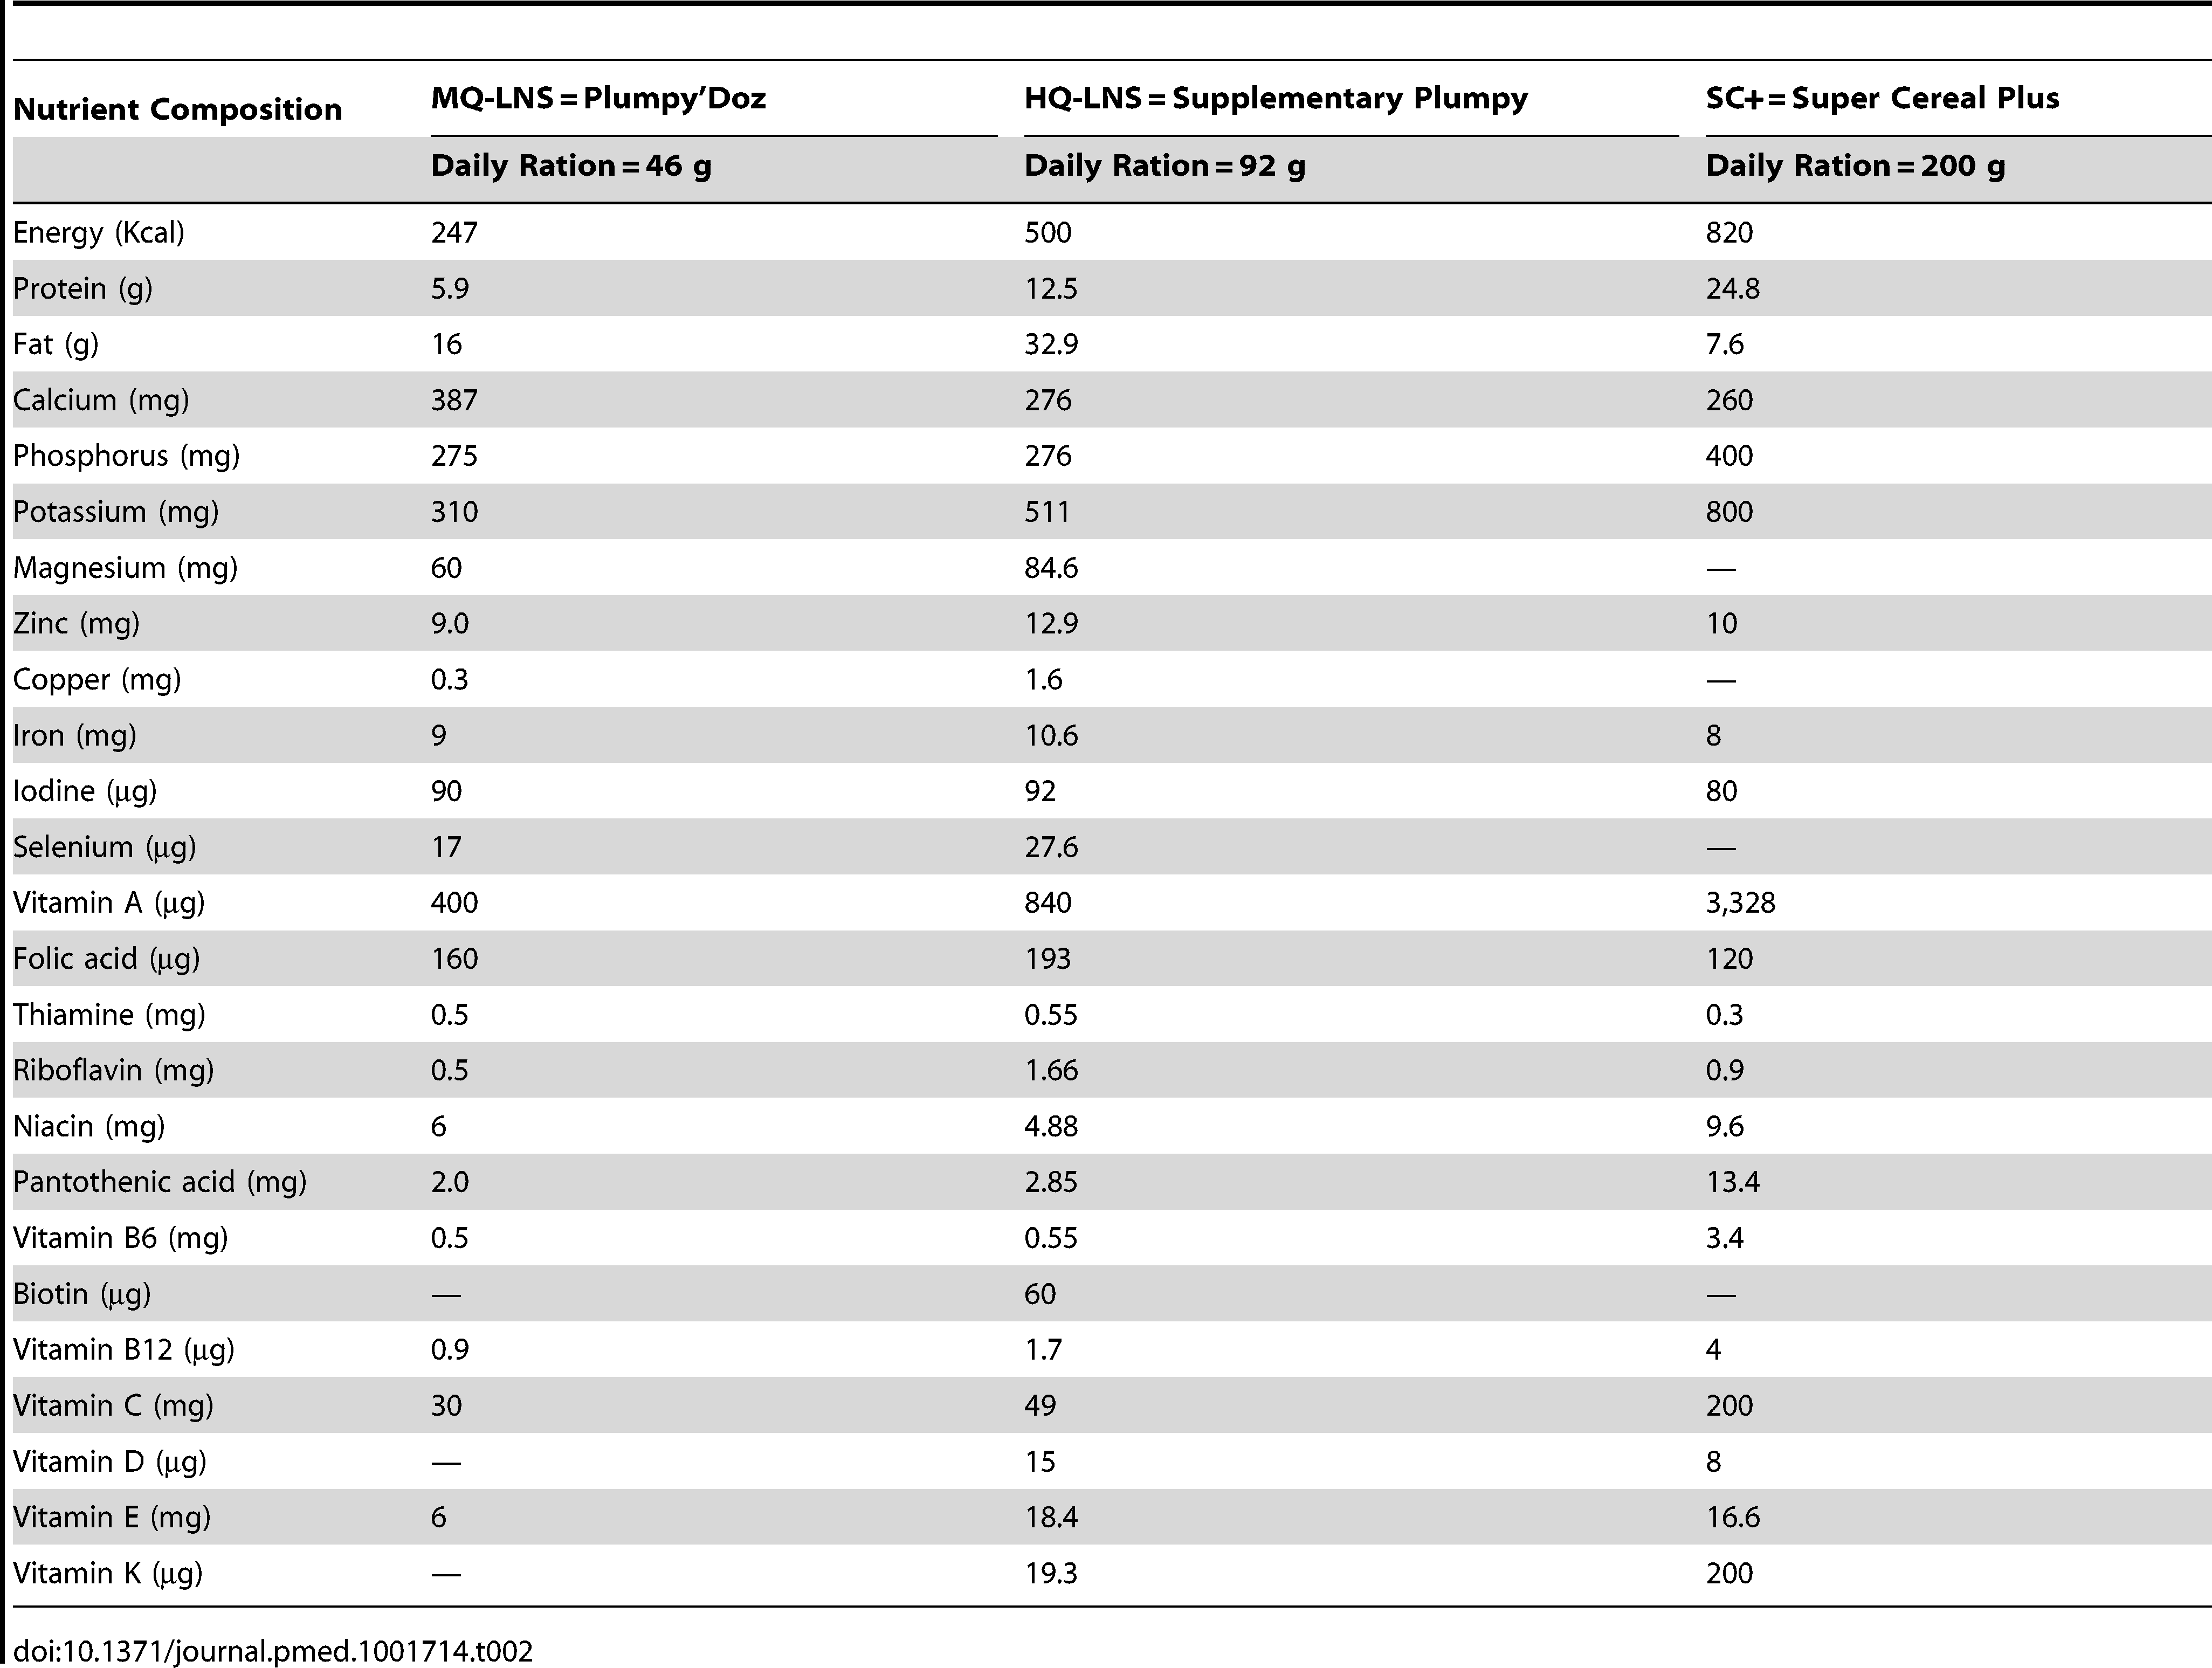 Nutrient composition of the nutritious supplementary foods used in this study per daily ration.